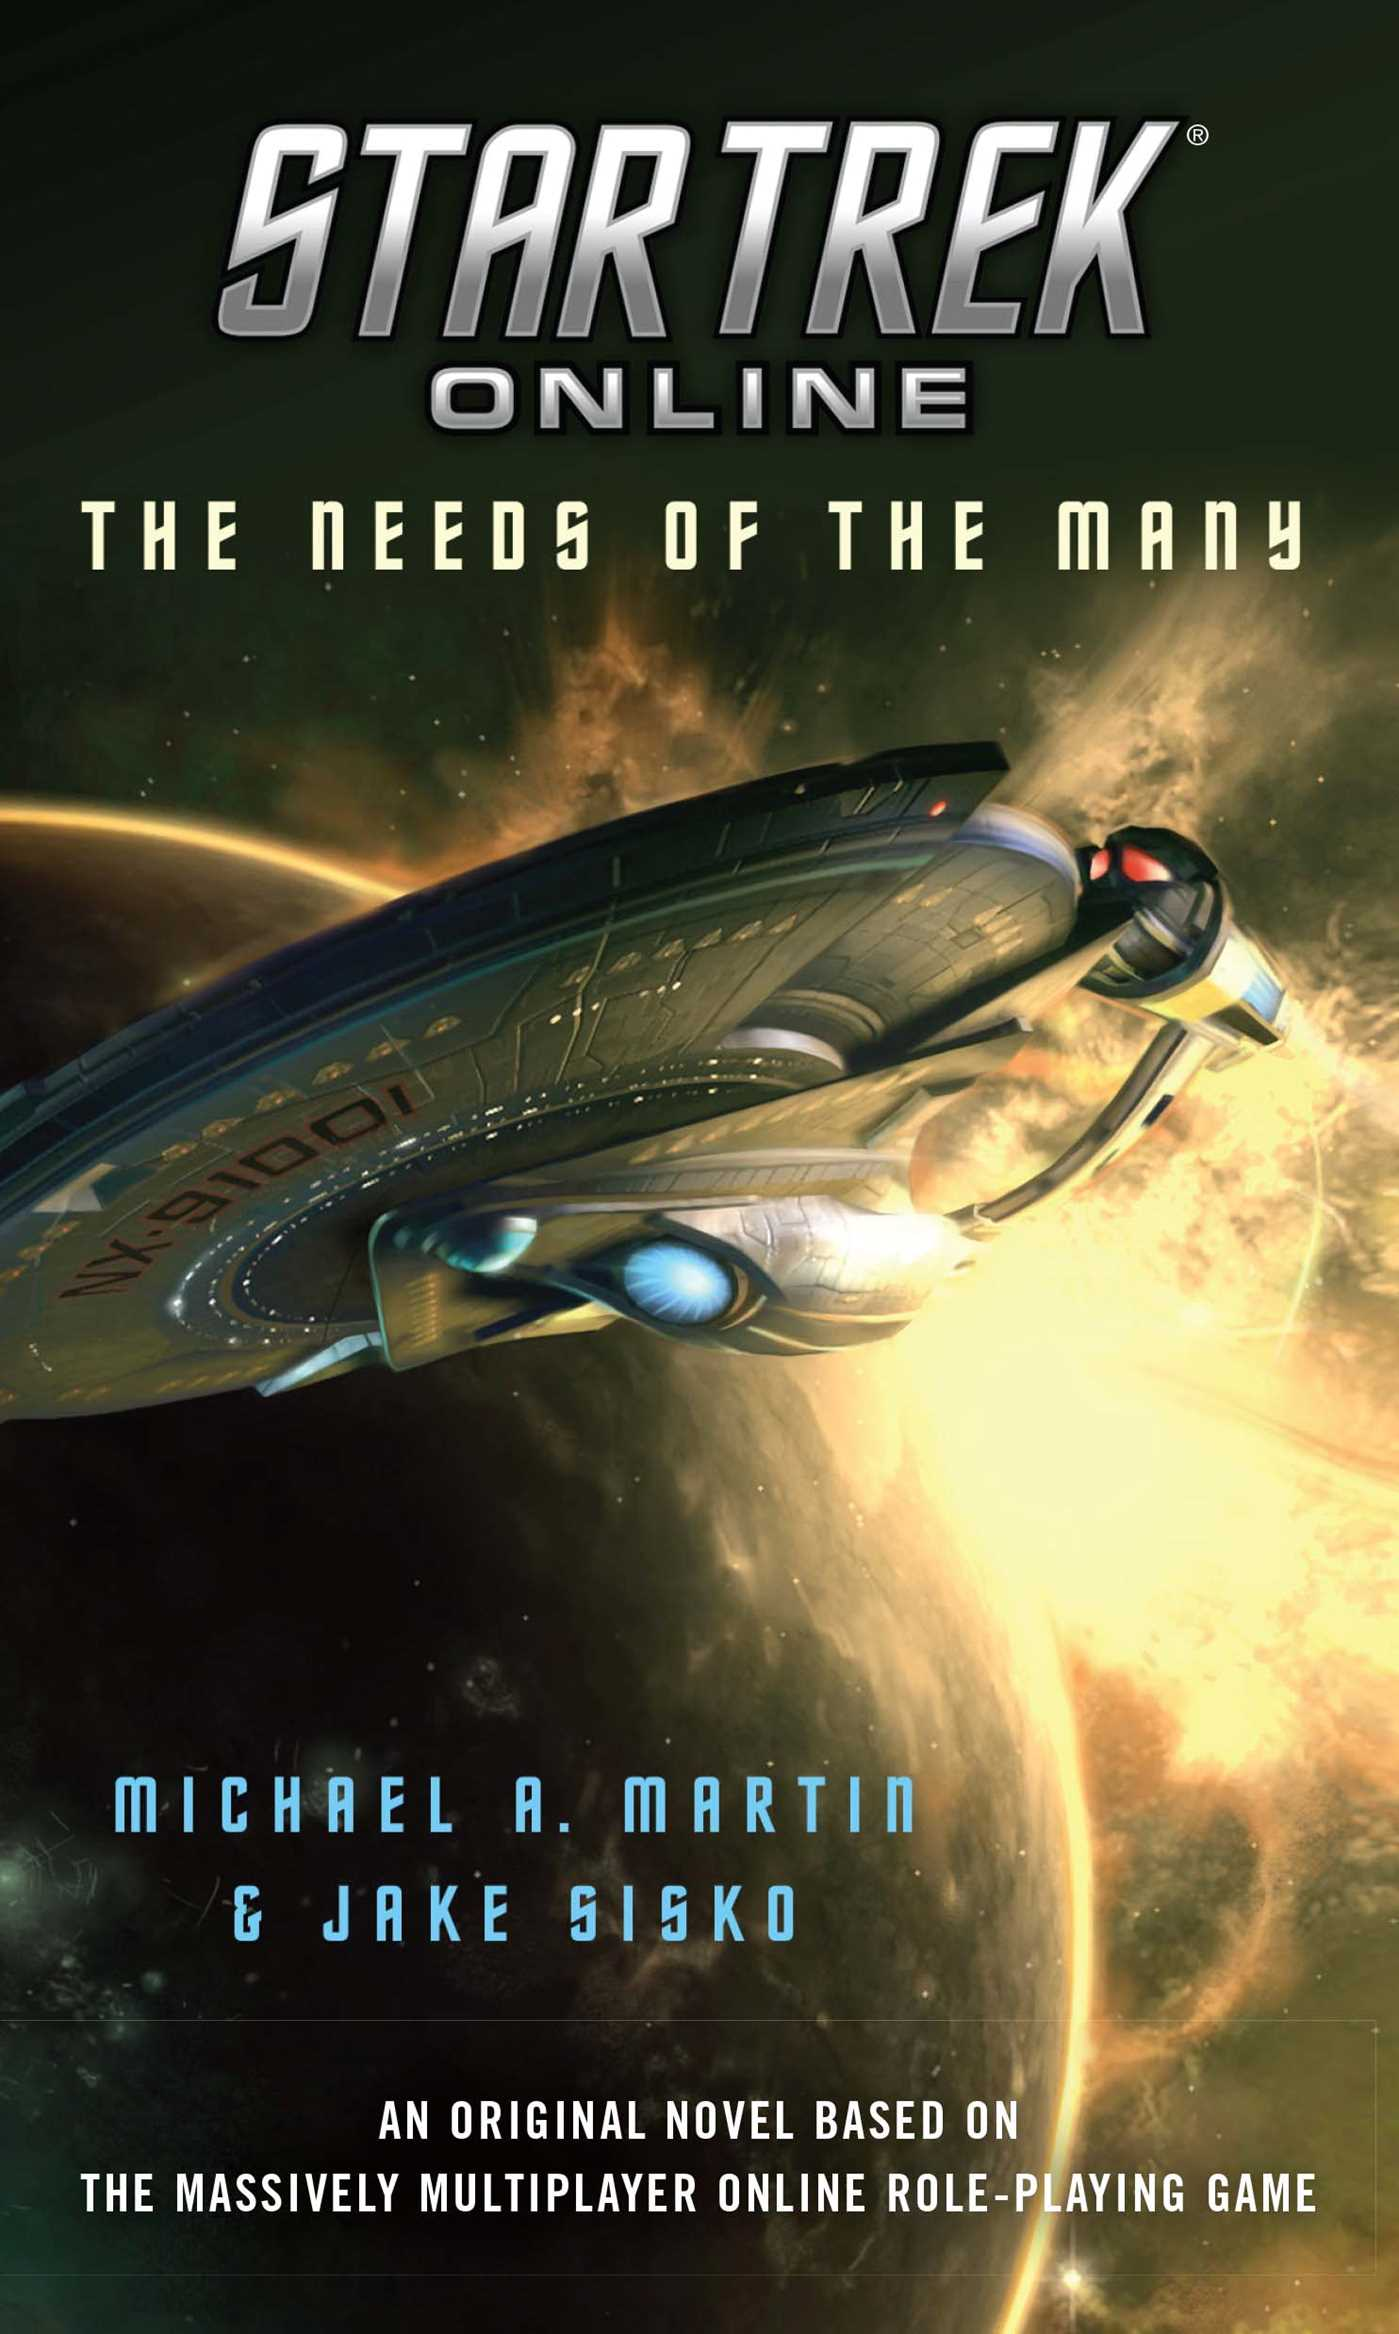 Star trek online the needs of the many 9781439186589 hr